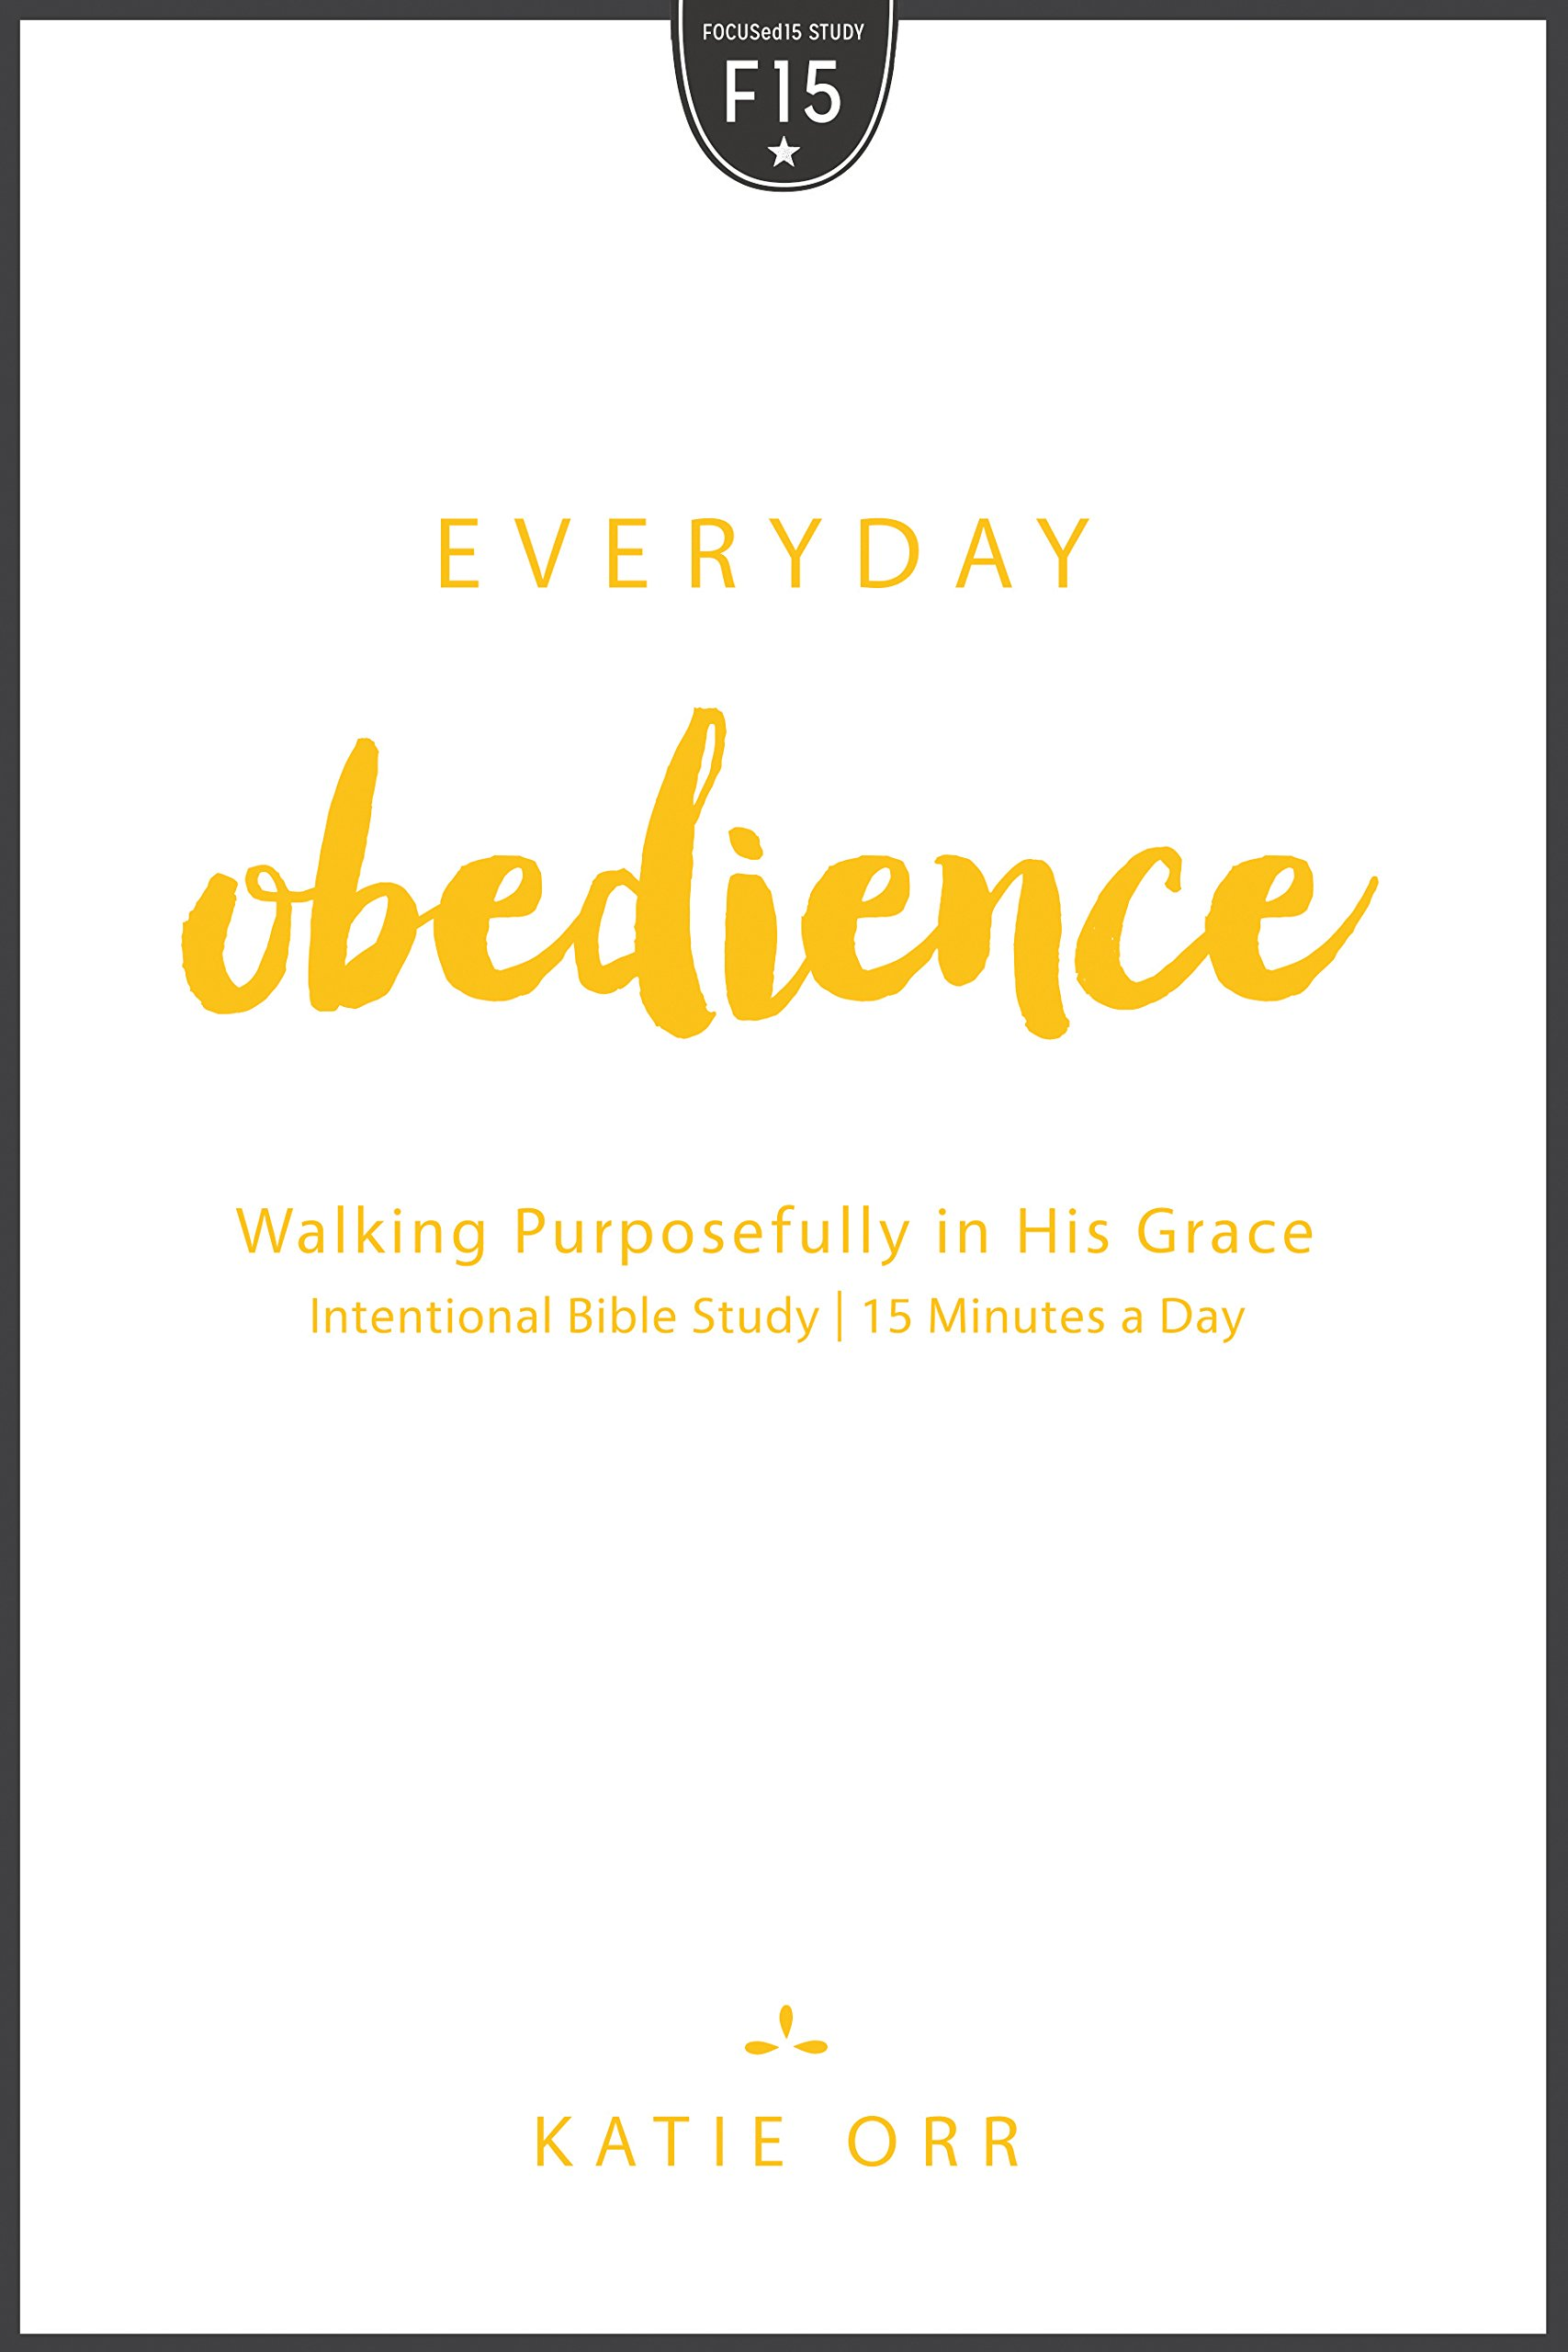 Everyday Obedience Walking Purposefully Grace product image